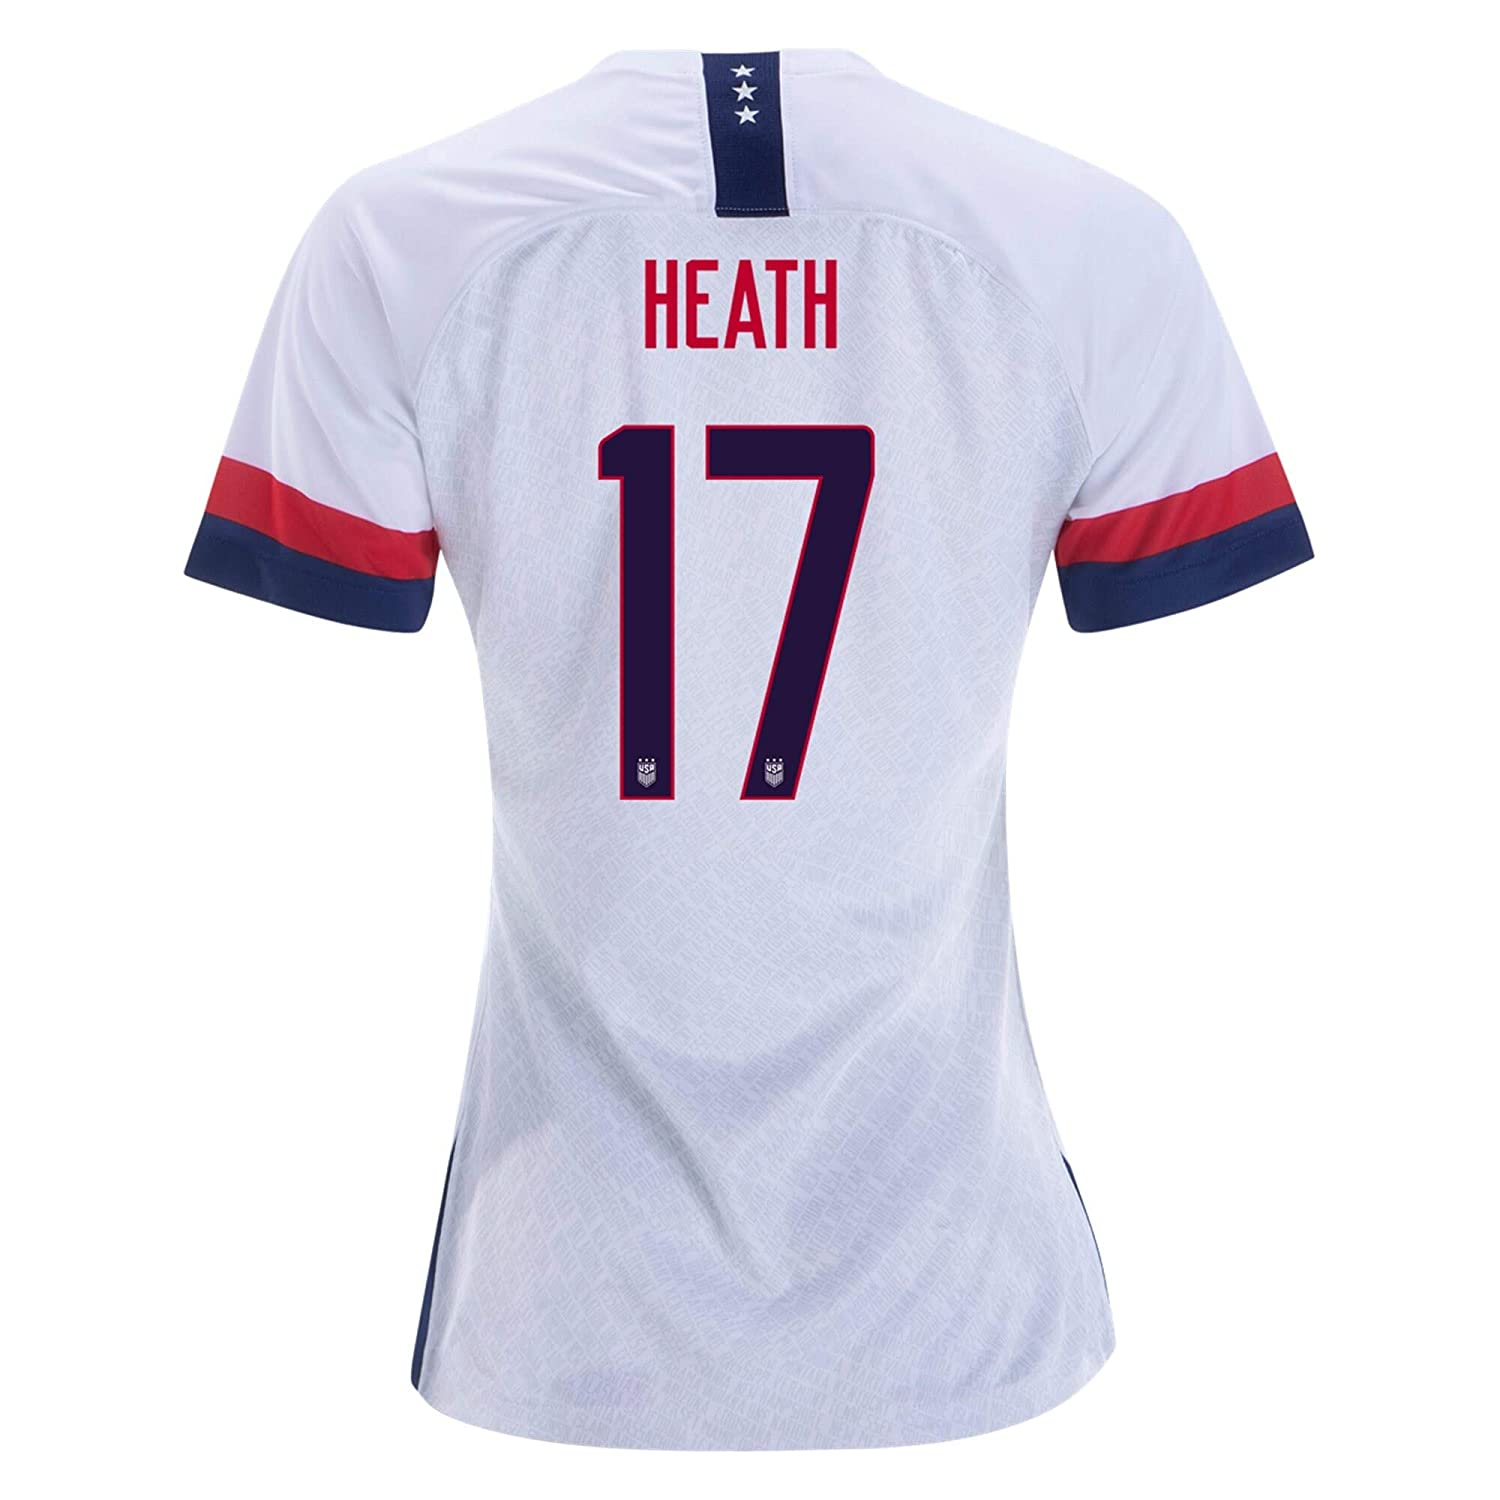 huge selection of 728d9 32906 17 Tobin Heath White Womens 2019 World Cup USA White Soccer ...